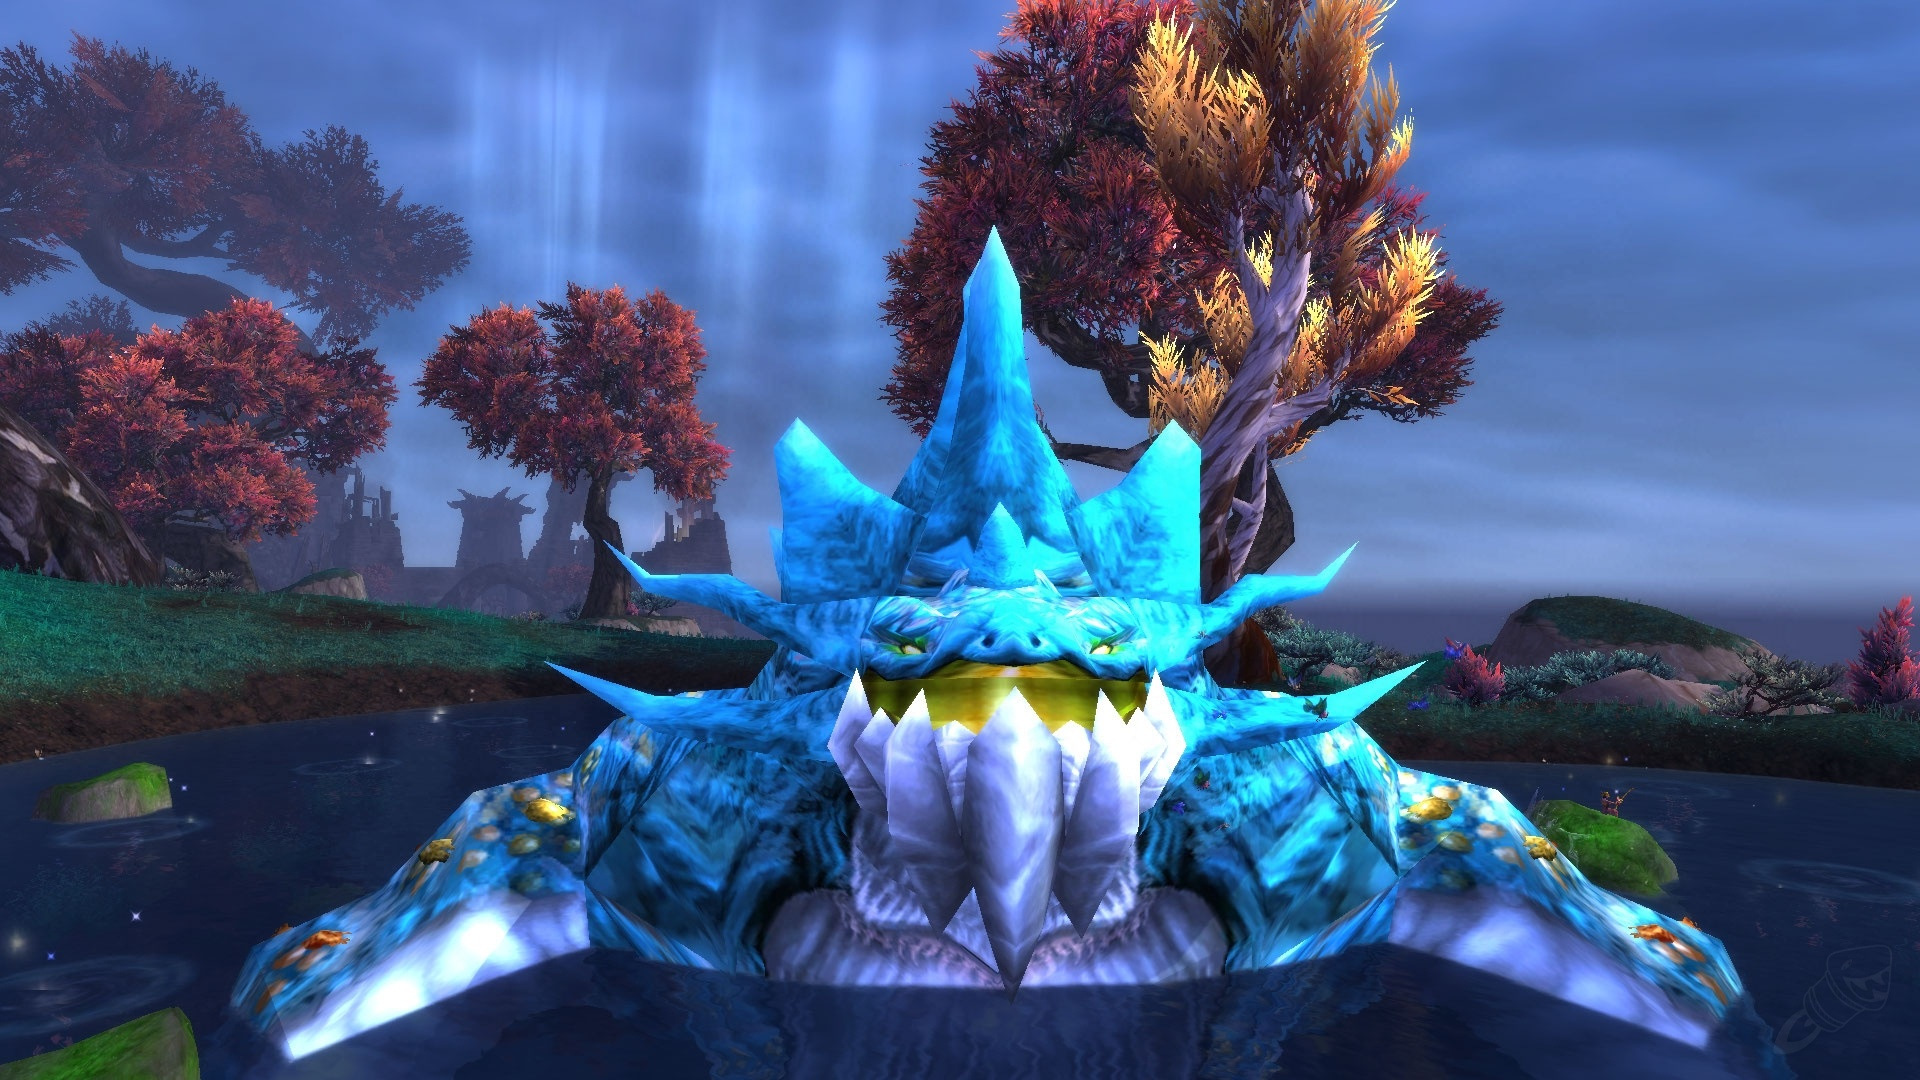 fishing chair wowhead purple patio chairs mists of pandaria and the anglers guide news